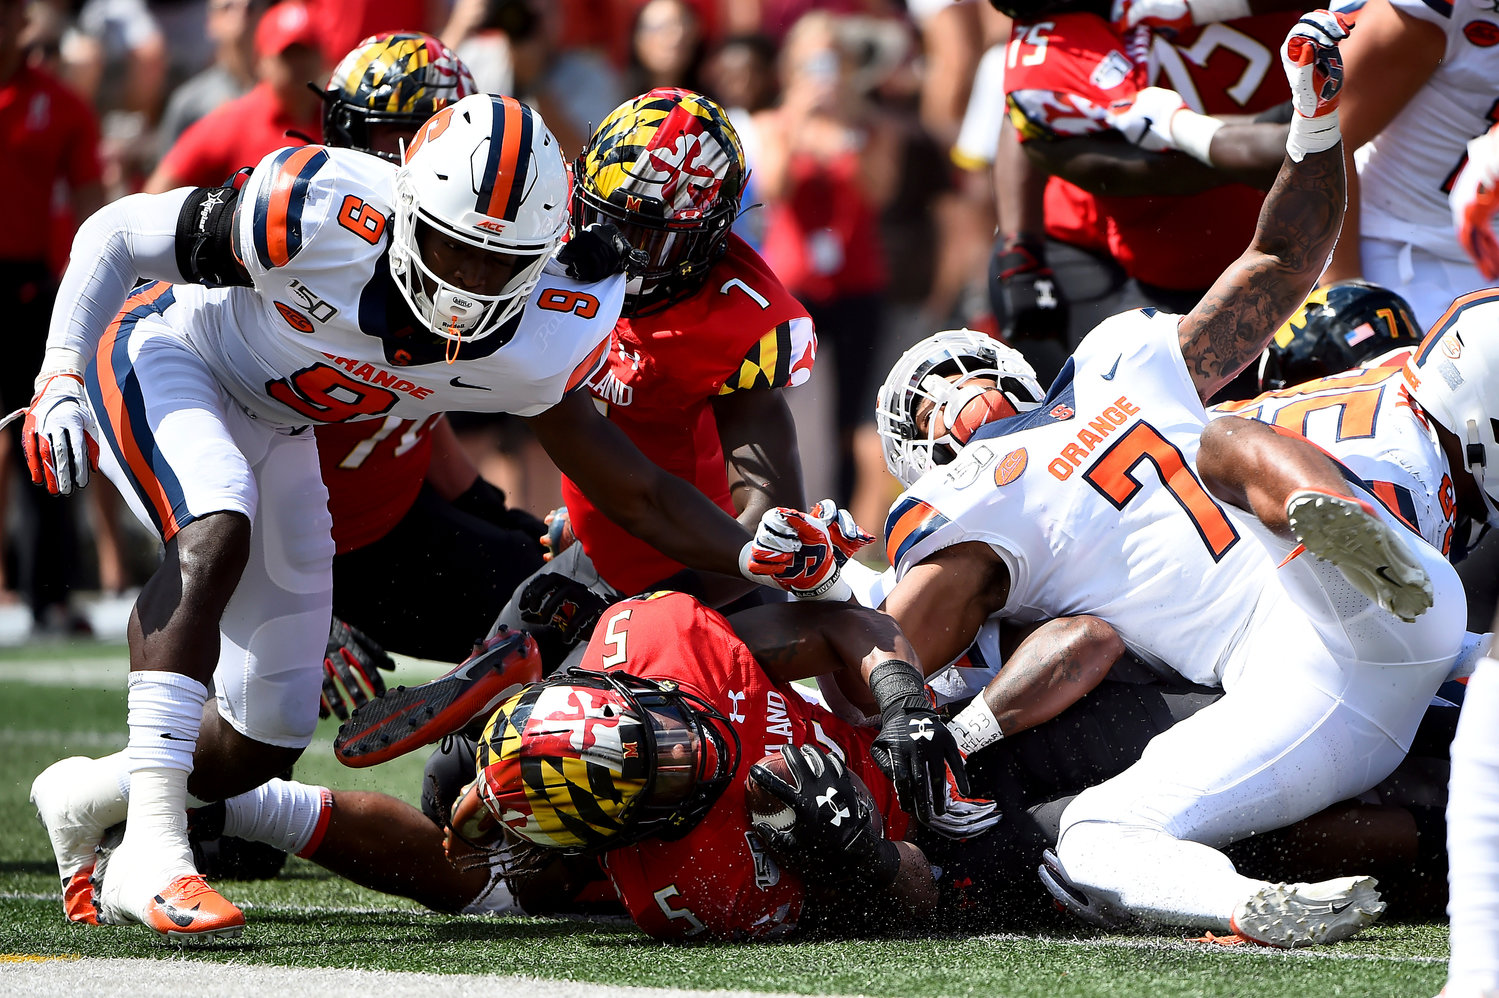 FINDING PAYDIRT — Terrapins running back Anthony McFarland Jr. (5) falls in to the end zone for a touchdown in front of Orange defenders during the first half of a college football game on Saturday in College Park, Md. The Orange fell 63-20.